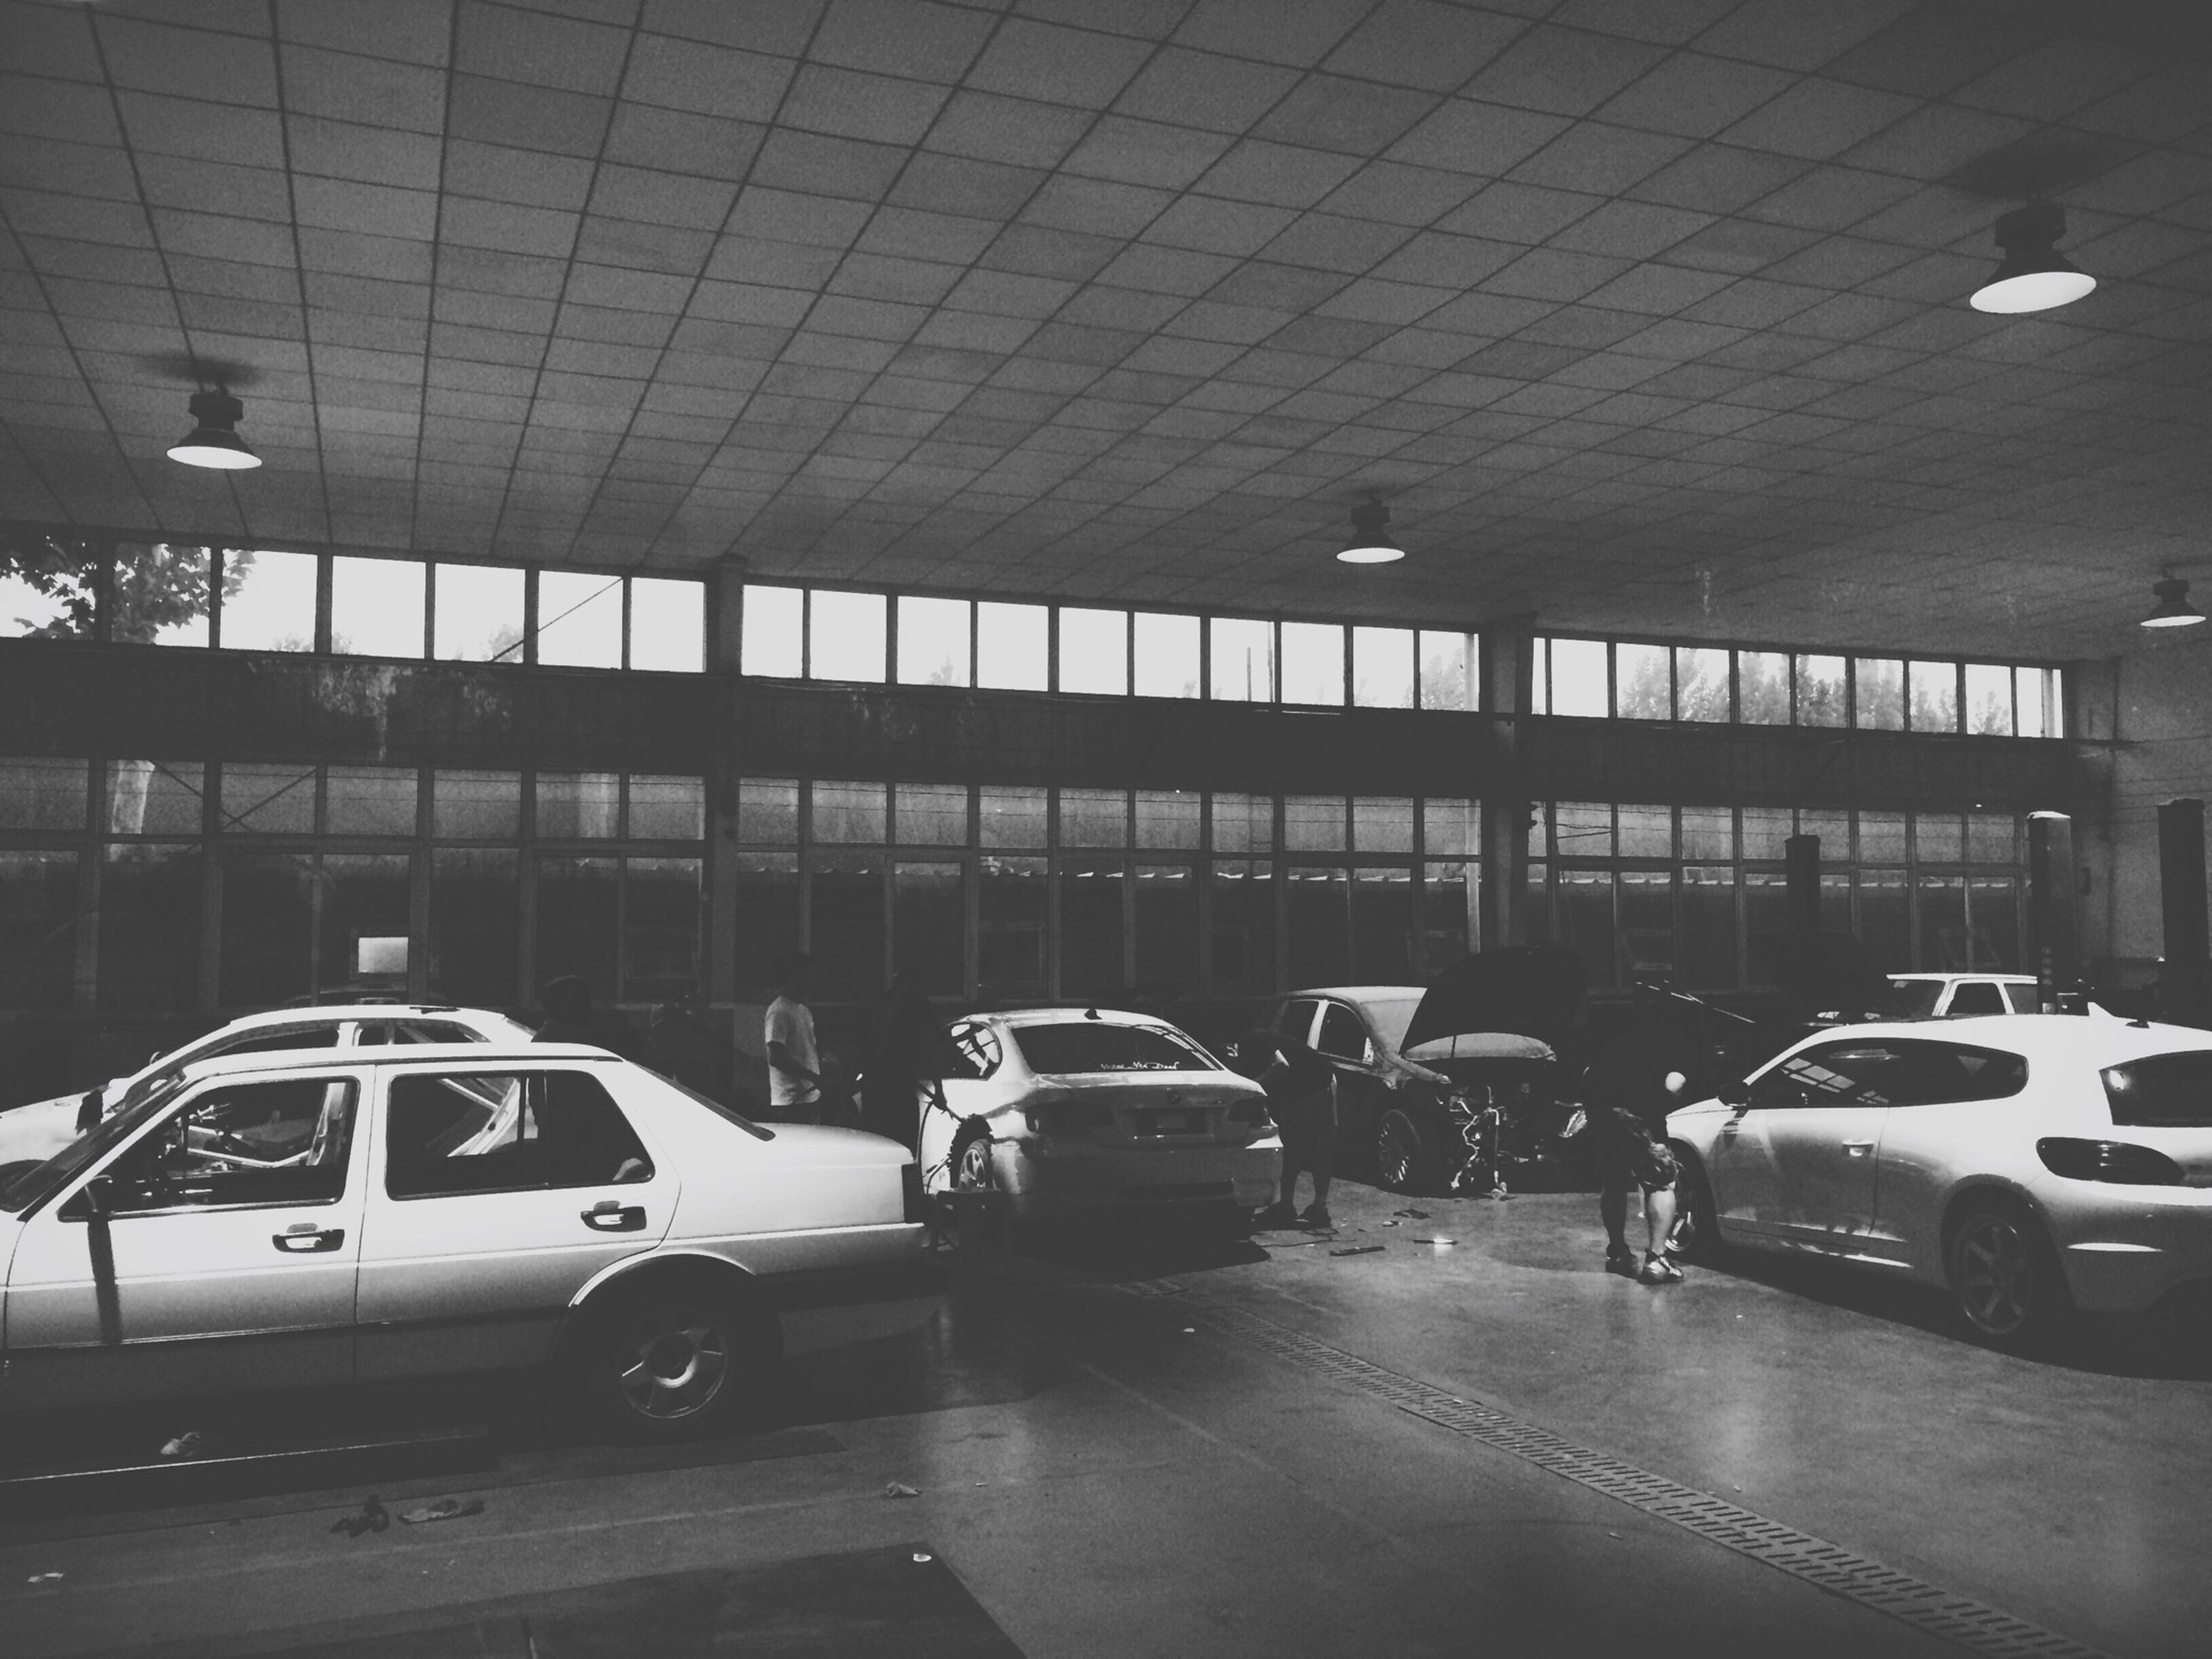 transportation, land vehicle, mode of transport, car, architecture, built structure, road, street, travel, indoors, city, road marking, on the move, parking lot, illuminated, city life, incidental people, stationary, airport, ceiling